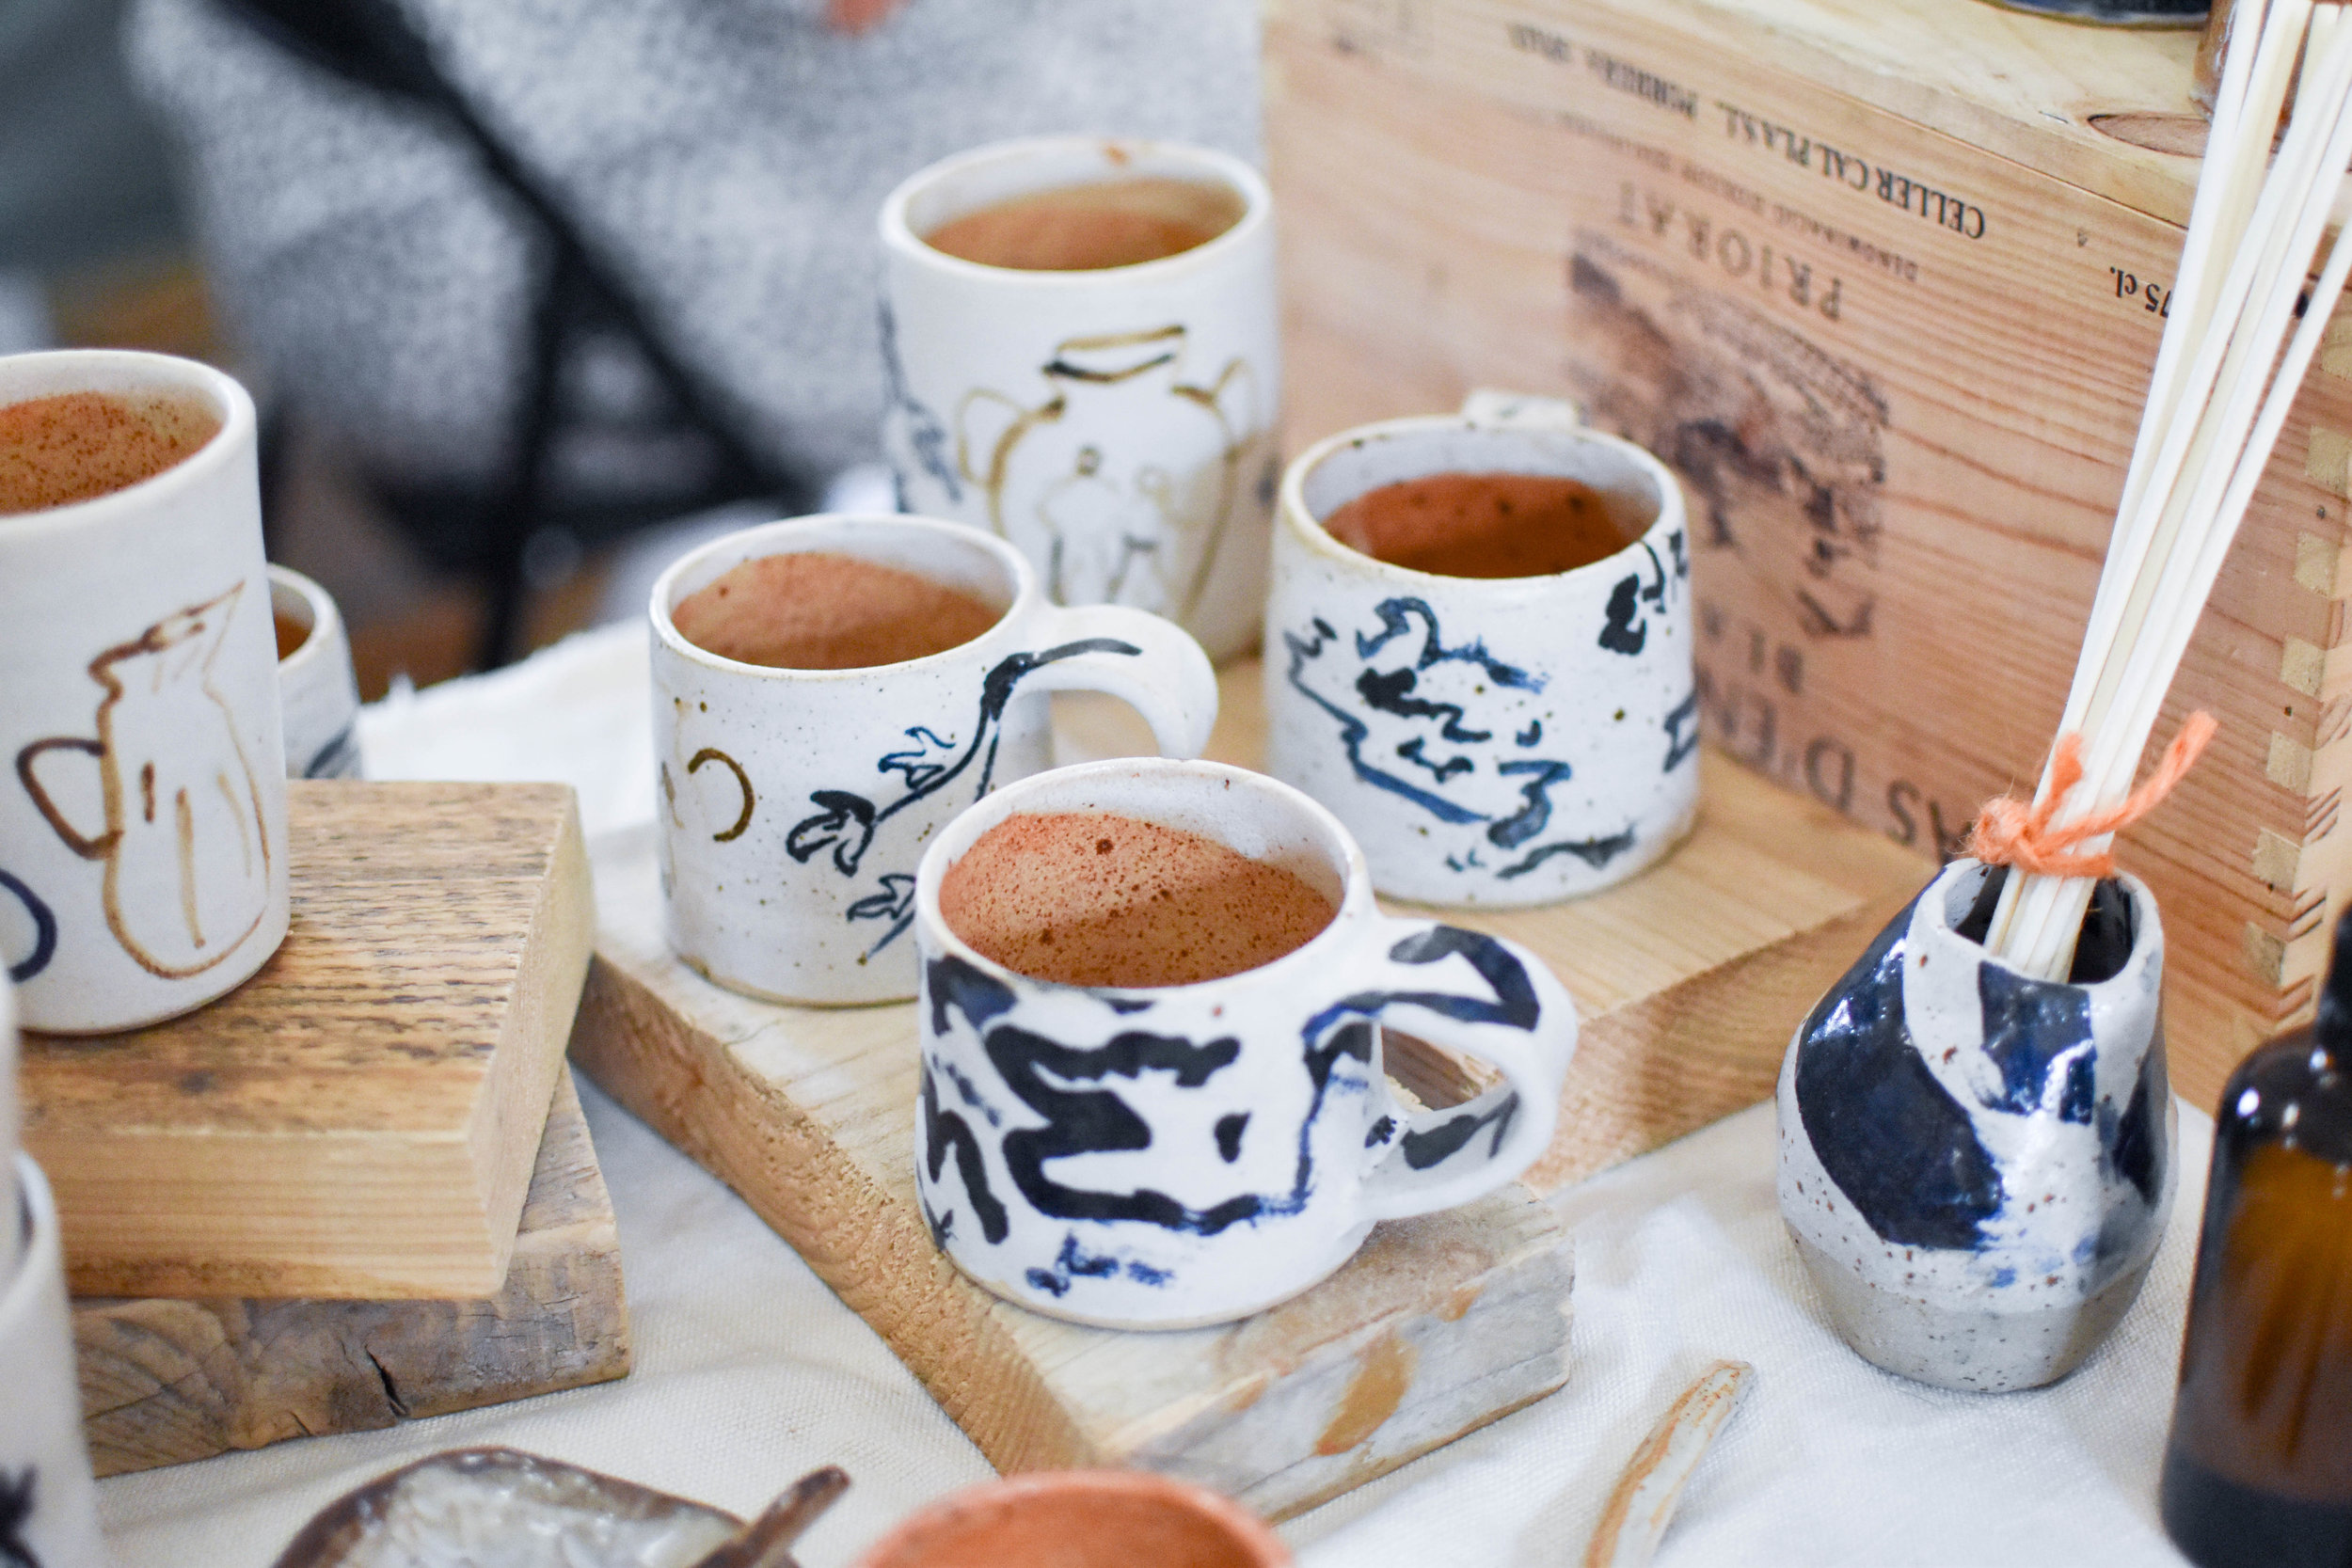 support-local-pop-up-market-fair-whitstable-mugs.jpg